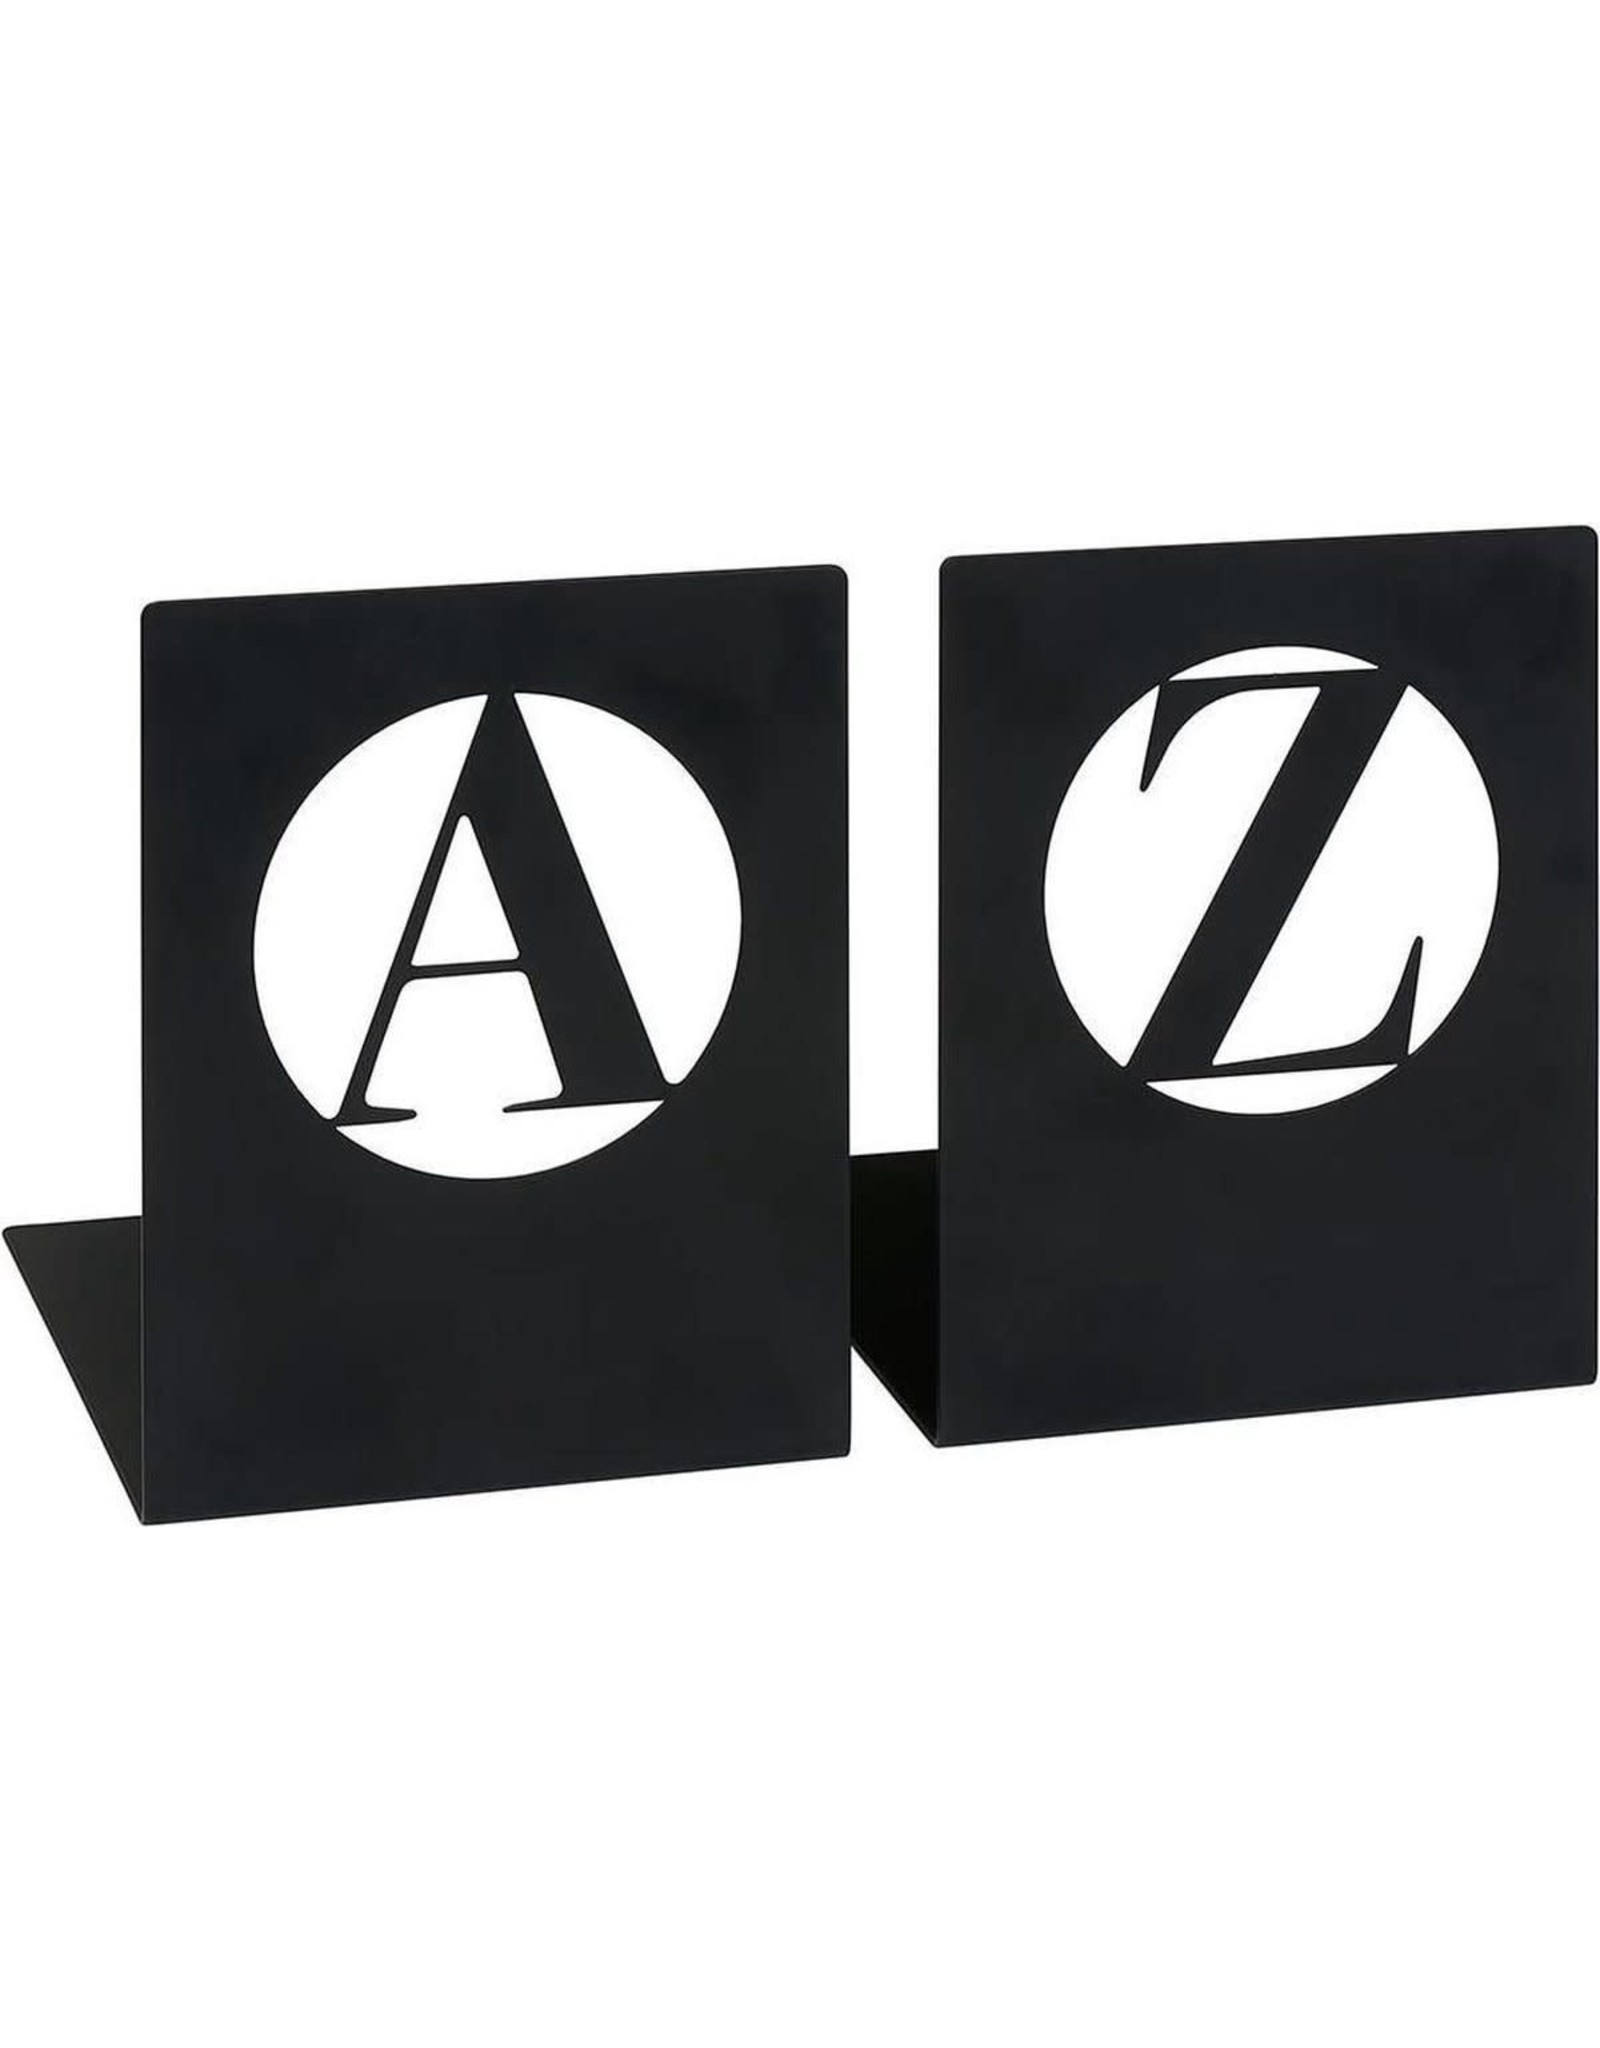 bookend - A&Z (1)